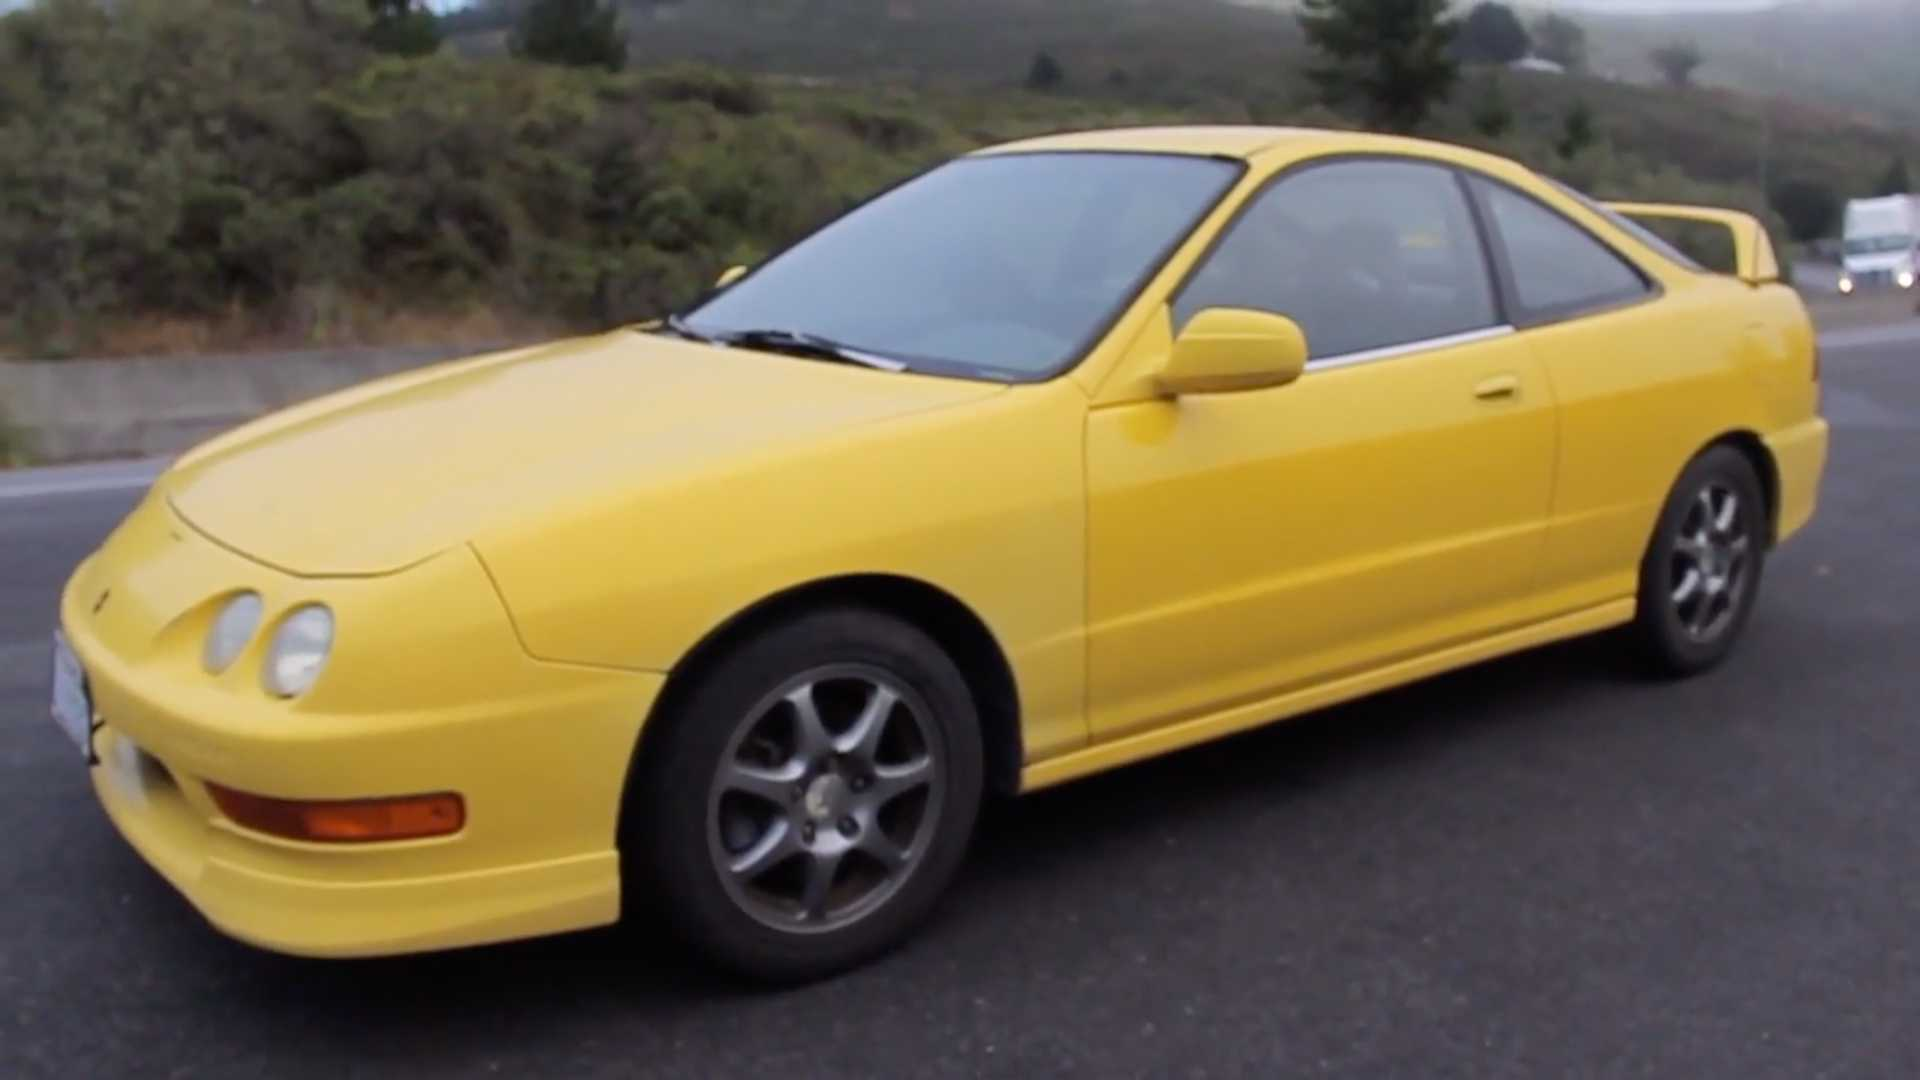 Acura Integra Type R For Free On Craigslist Turns Out To Be Legit